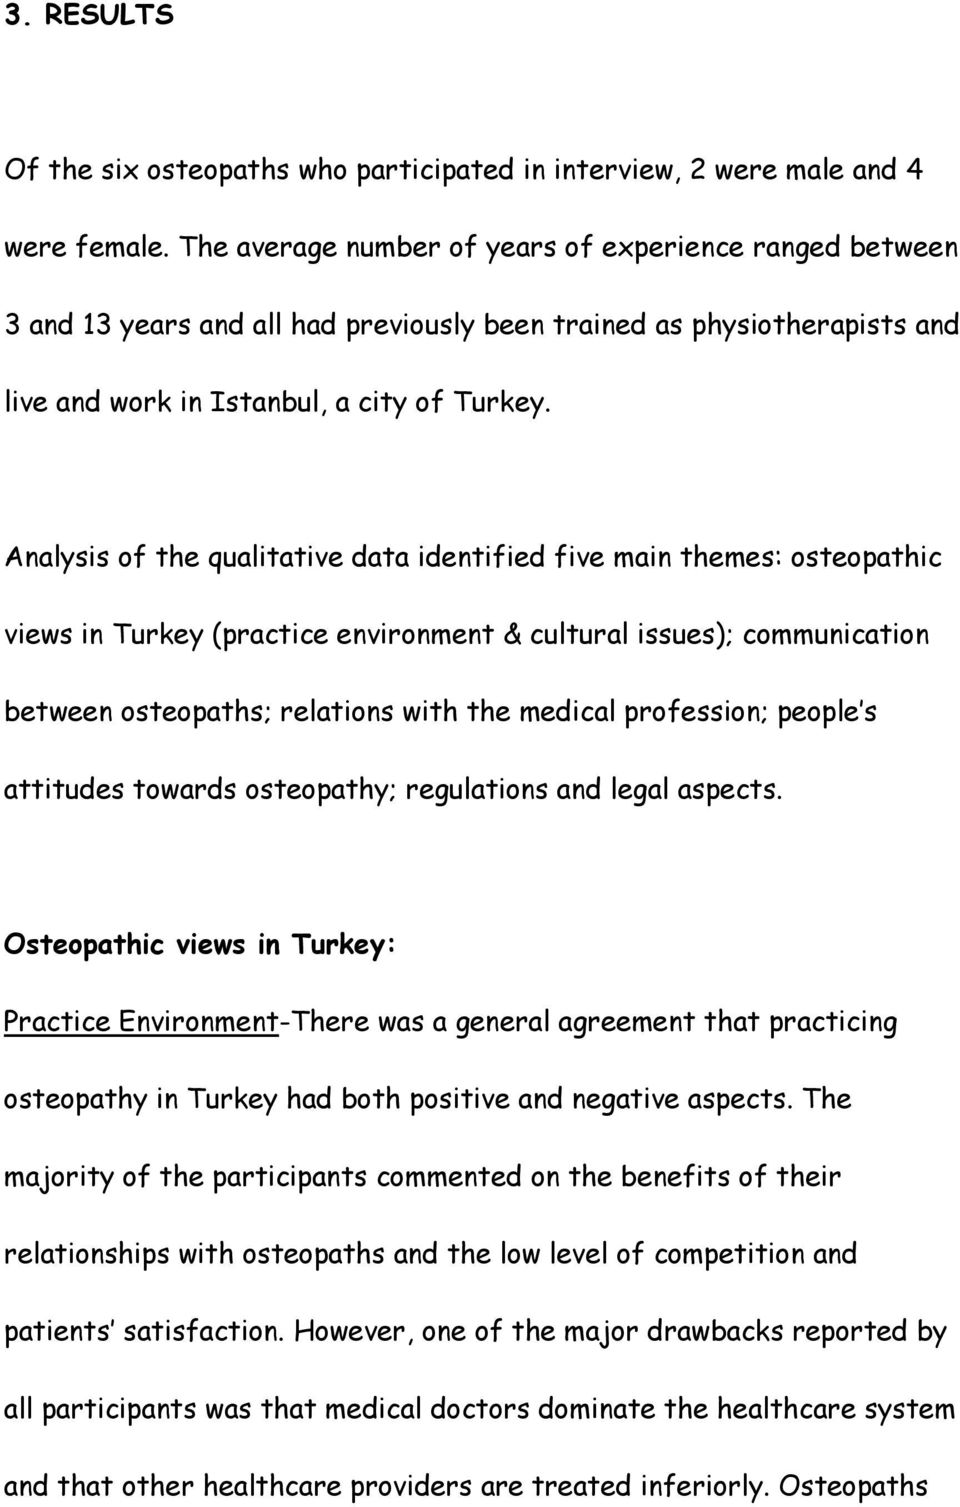 Analysis of the qualitative data identified five main themes: osteopathic views in Turkey (practice environment & cultural issues); communication between osteopaths; relations with the medical